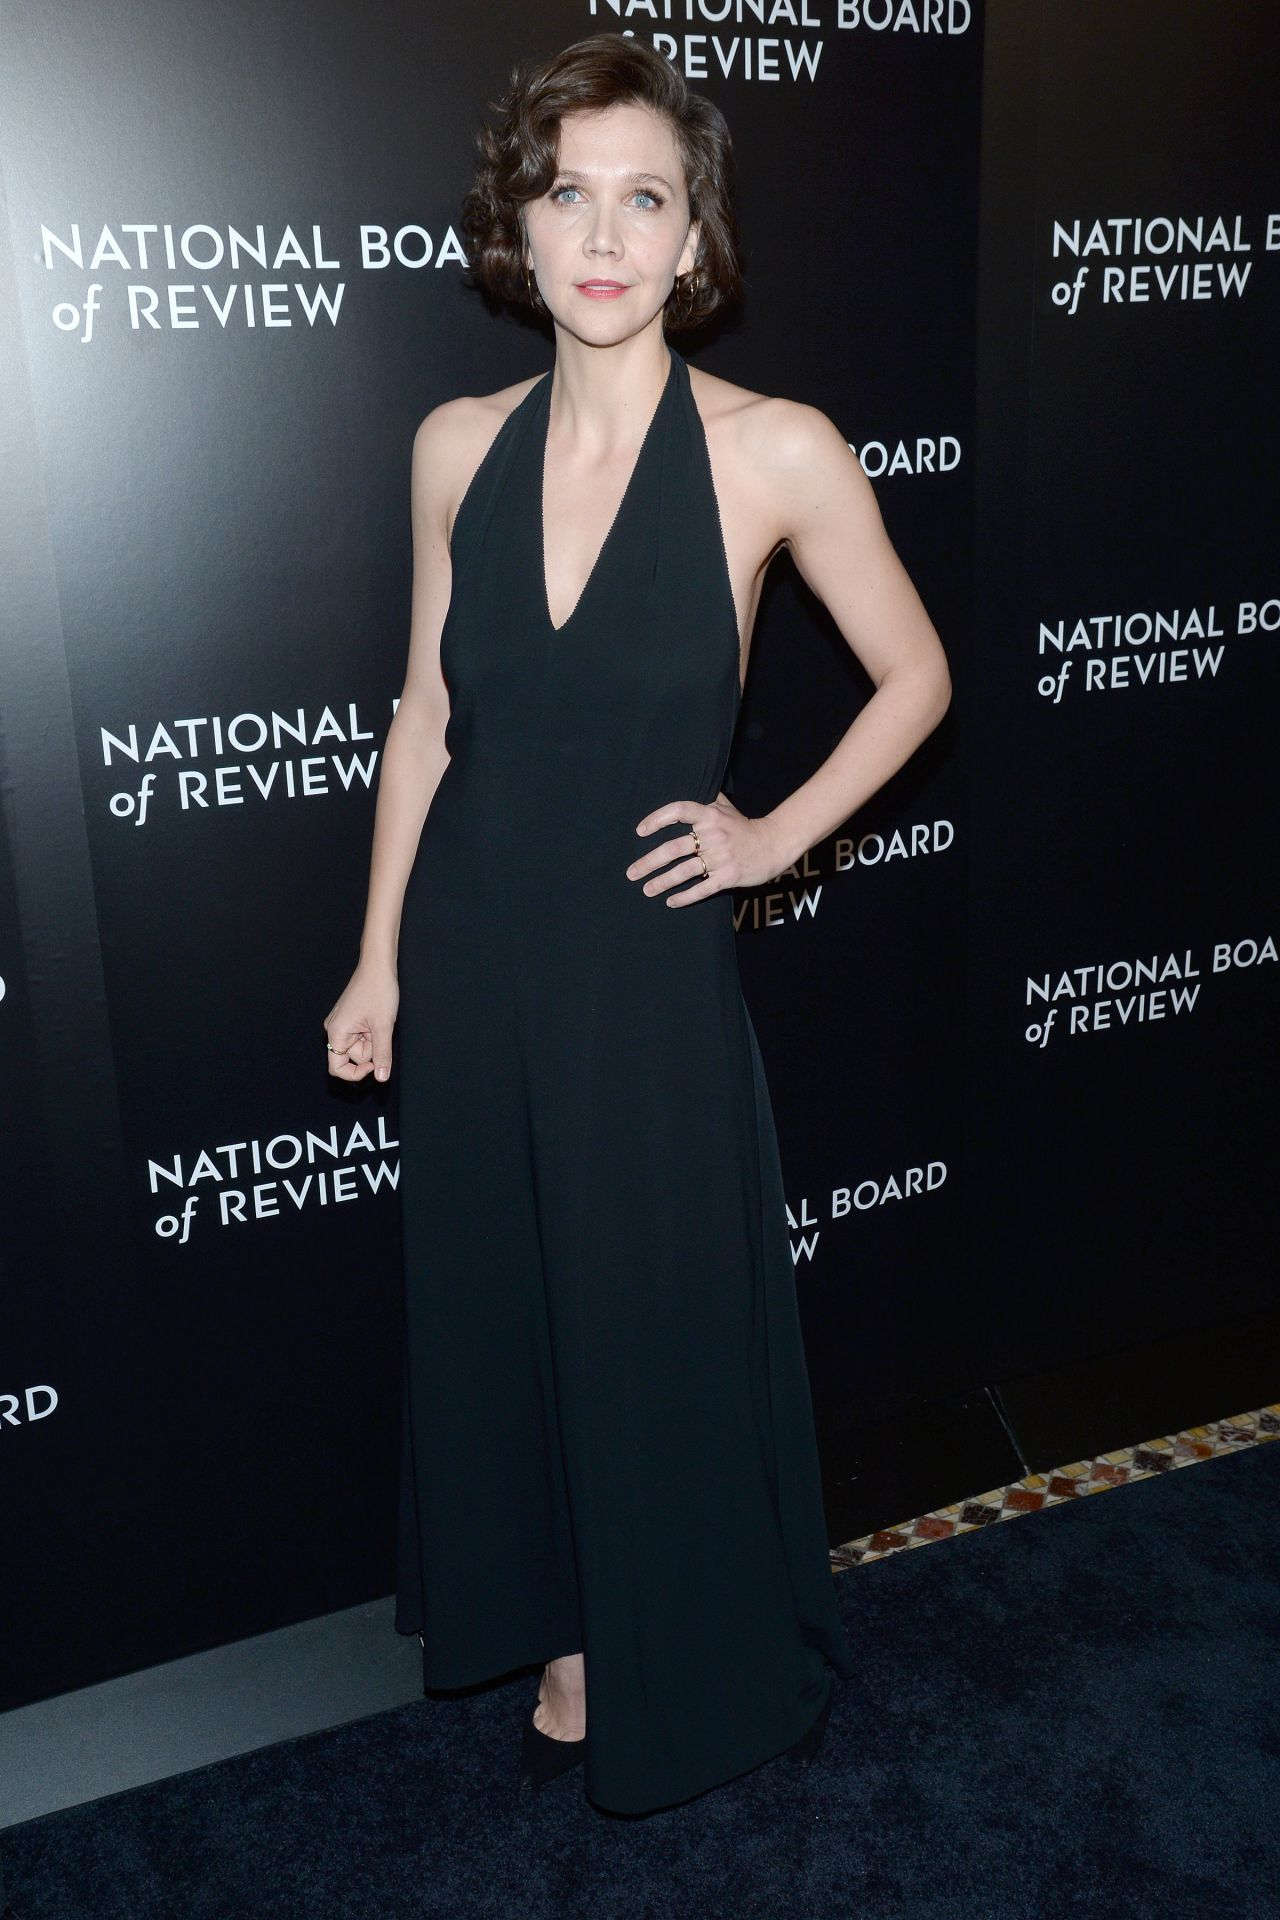 maggie-gyllenhaal-2015-national-board-of-review-awards-gala-in-new-york-city-8